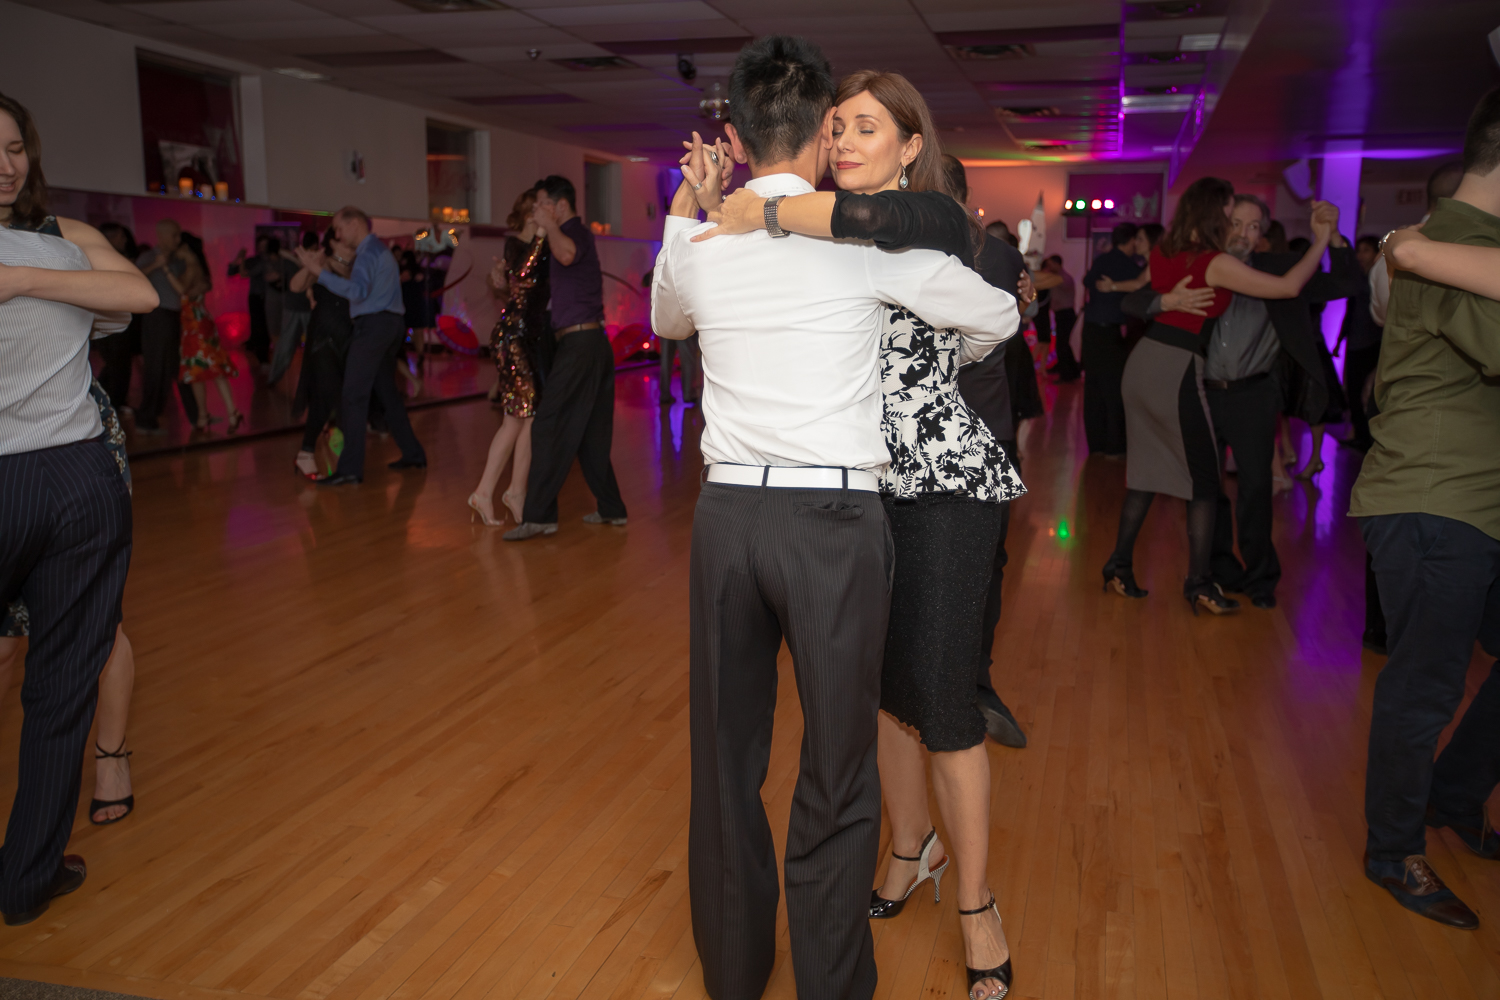 EVENTS> COME TANGO with us in 2019 8th edition www.TorontoTangoMarathon.com @ www.TheContinentalDanceClub.com